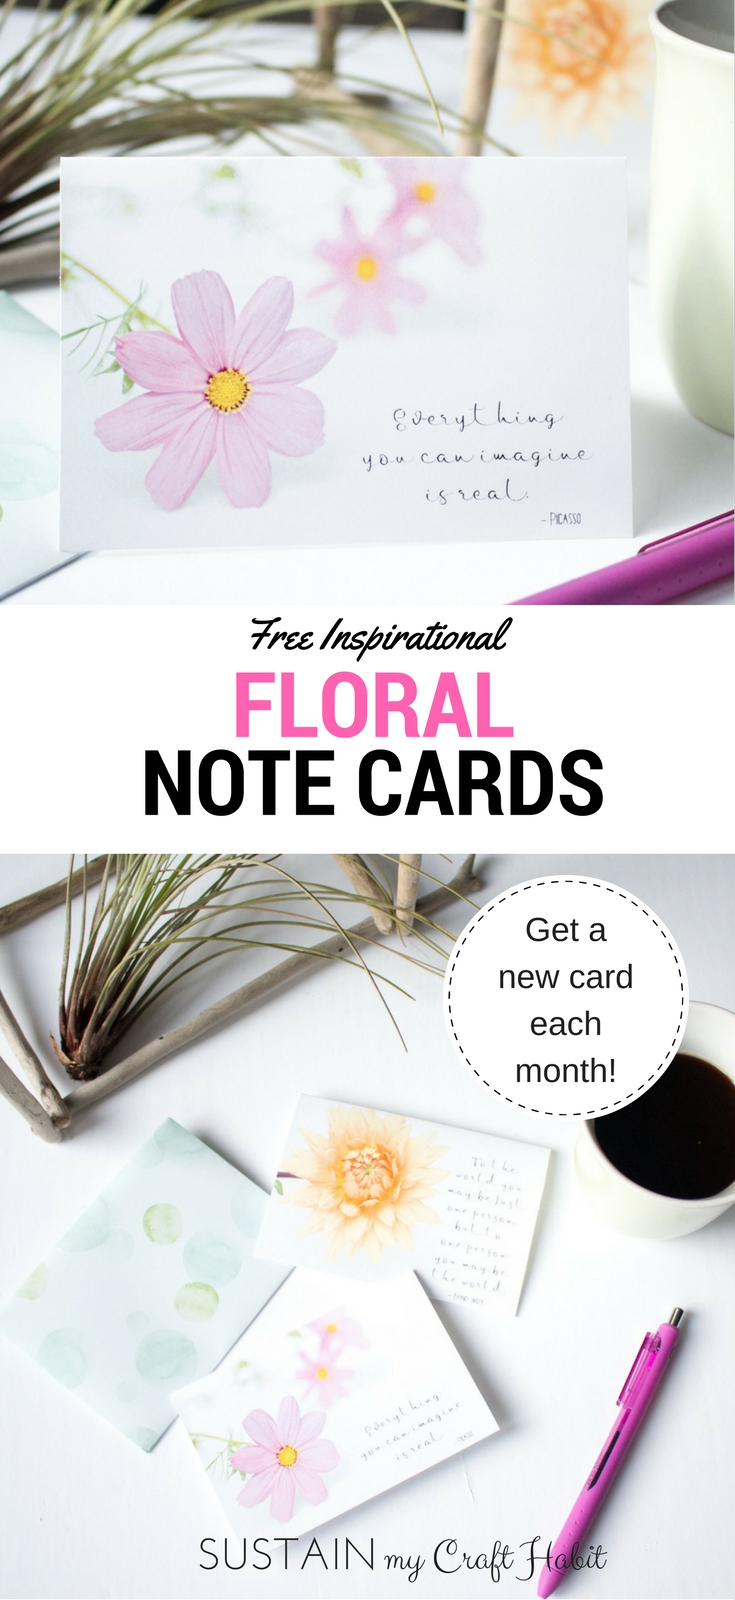 These free printable note cards would be great for birthdays, showers or other special events in need of a little motivational touch. Click through to grab your own and sign up to receive and new card template each month.